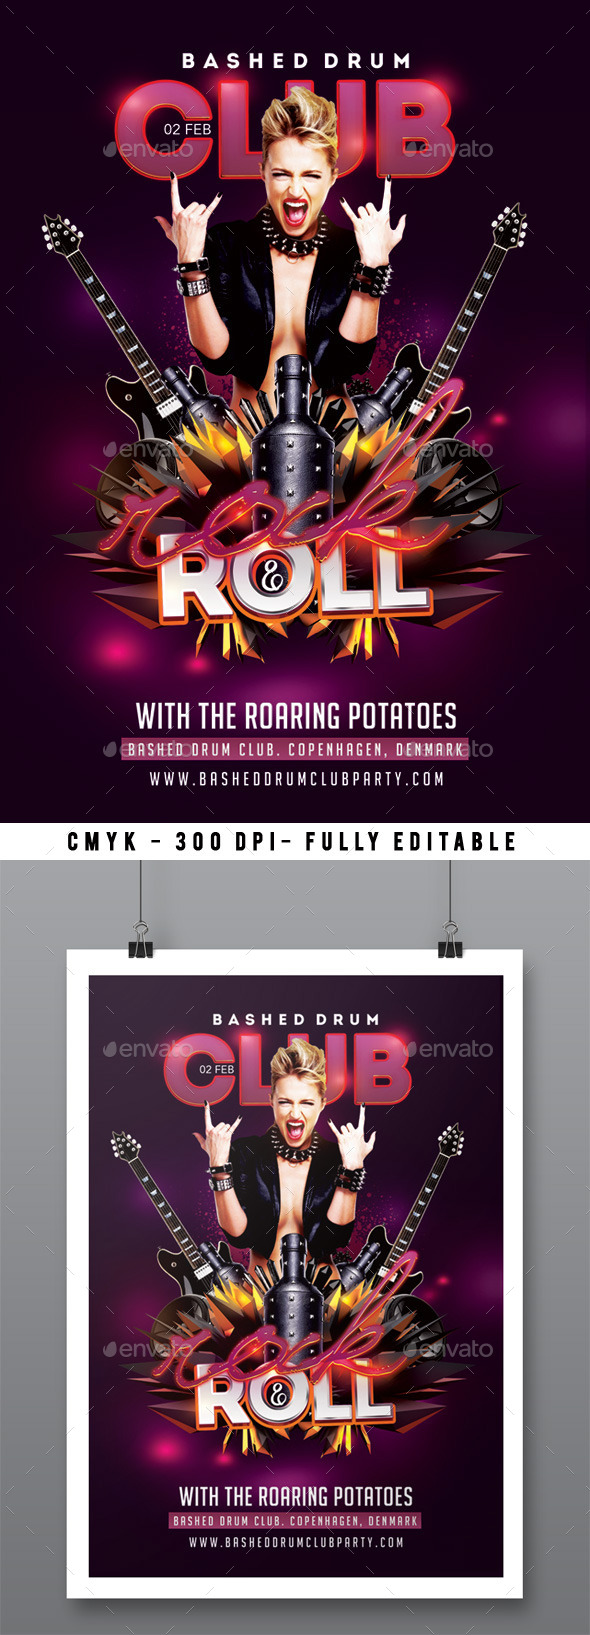 Rock And Roll Bashed Drum Party In Club - Clubs & Parties Events